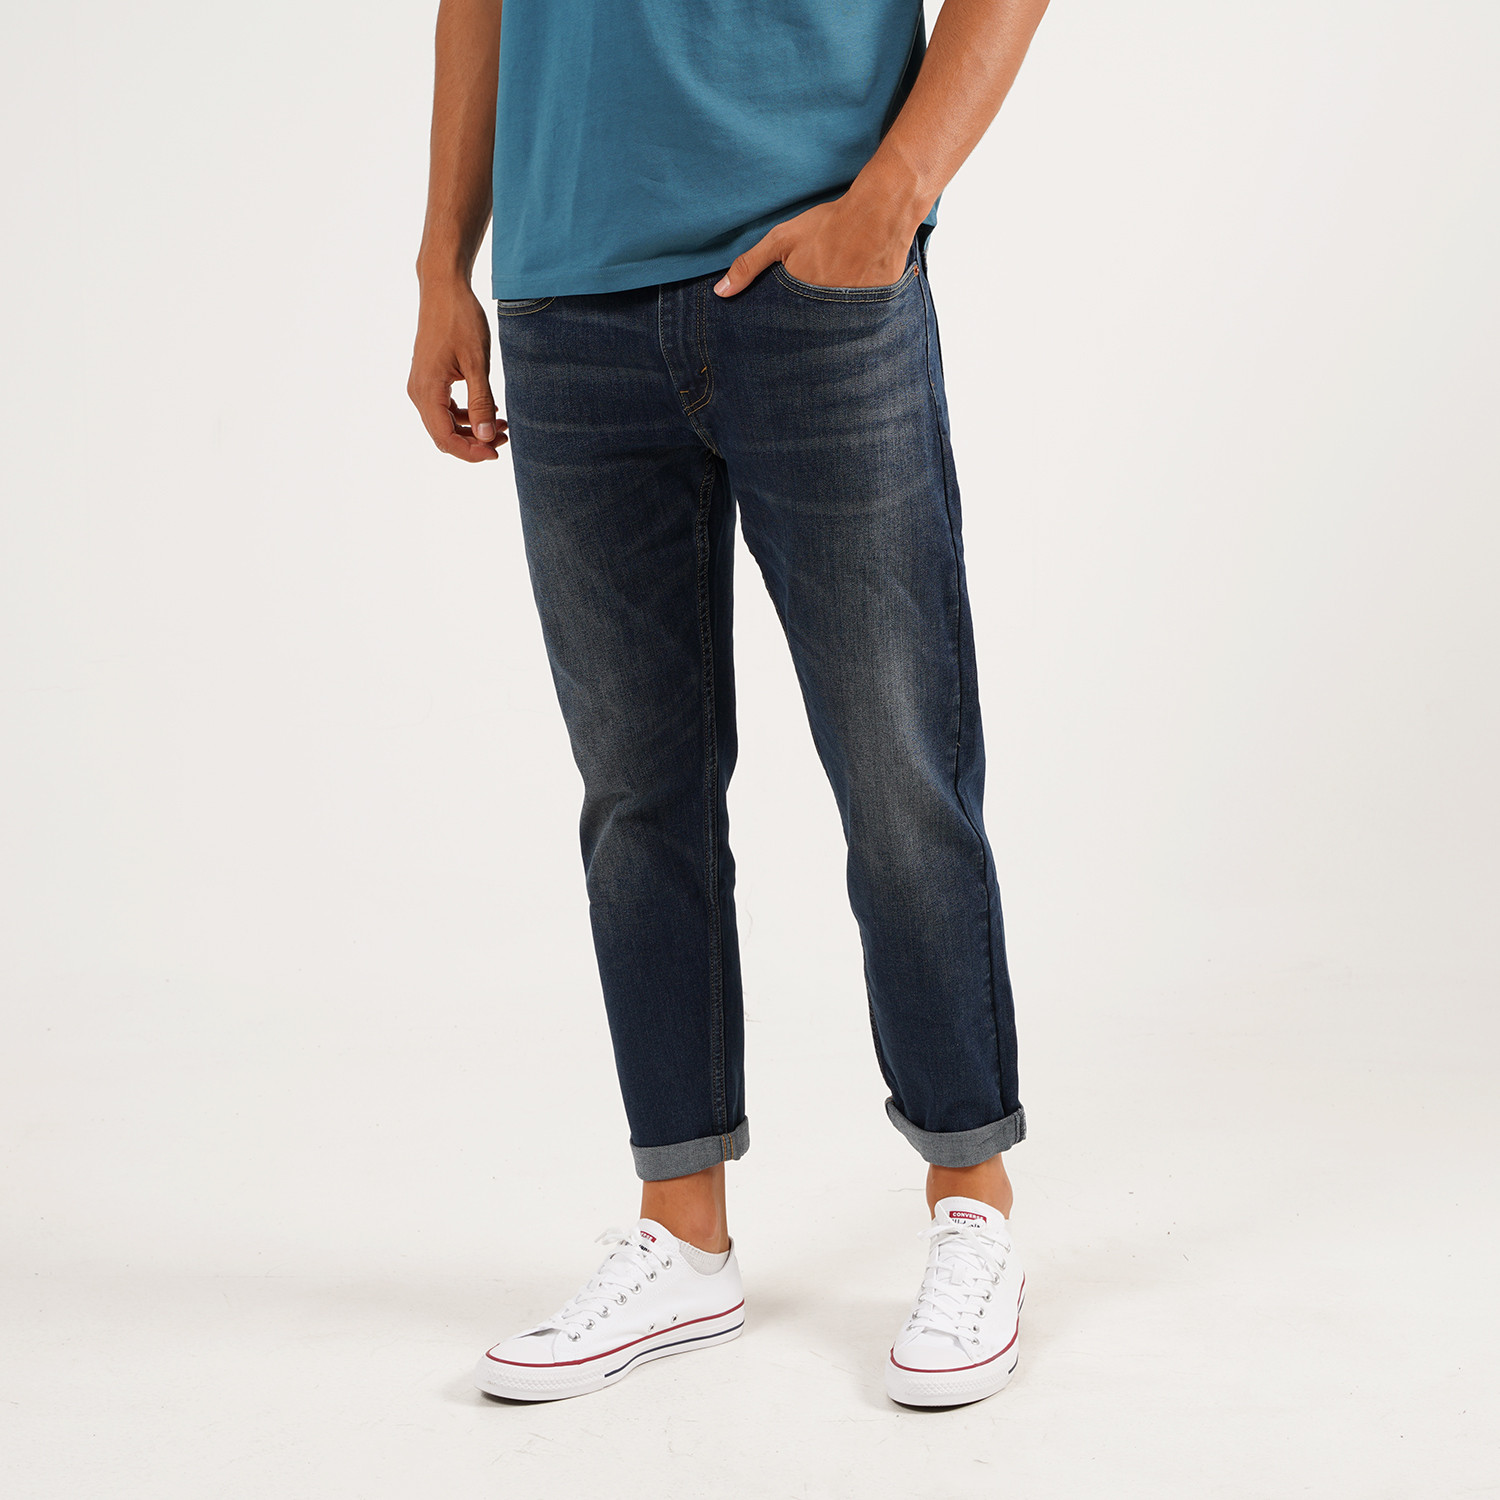 Levis 502 Taper Hiball Can Can Ανδρικό Τζιν Παντελόνι (9000054208_36604)